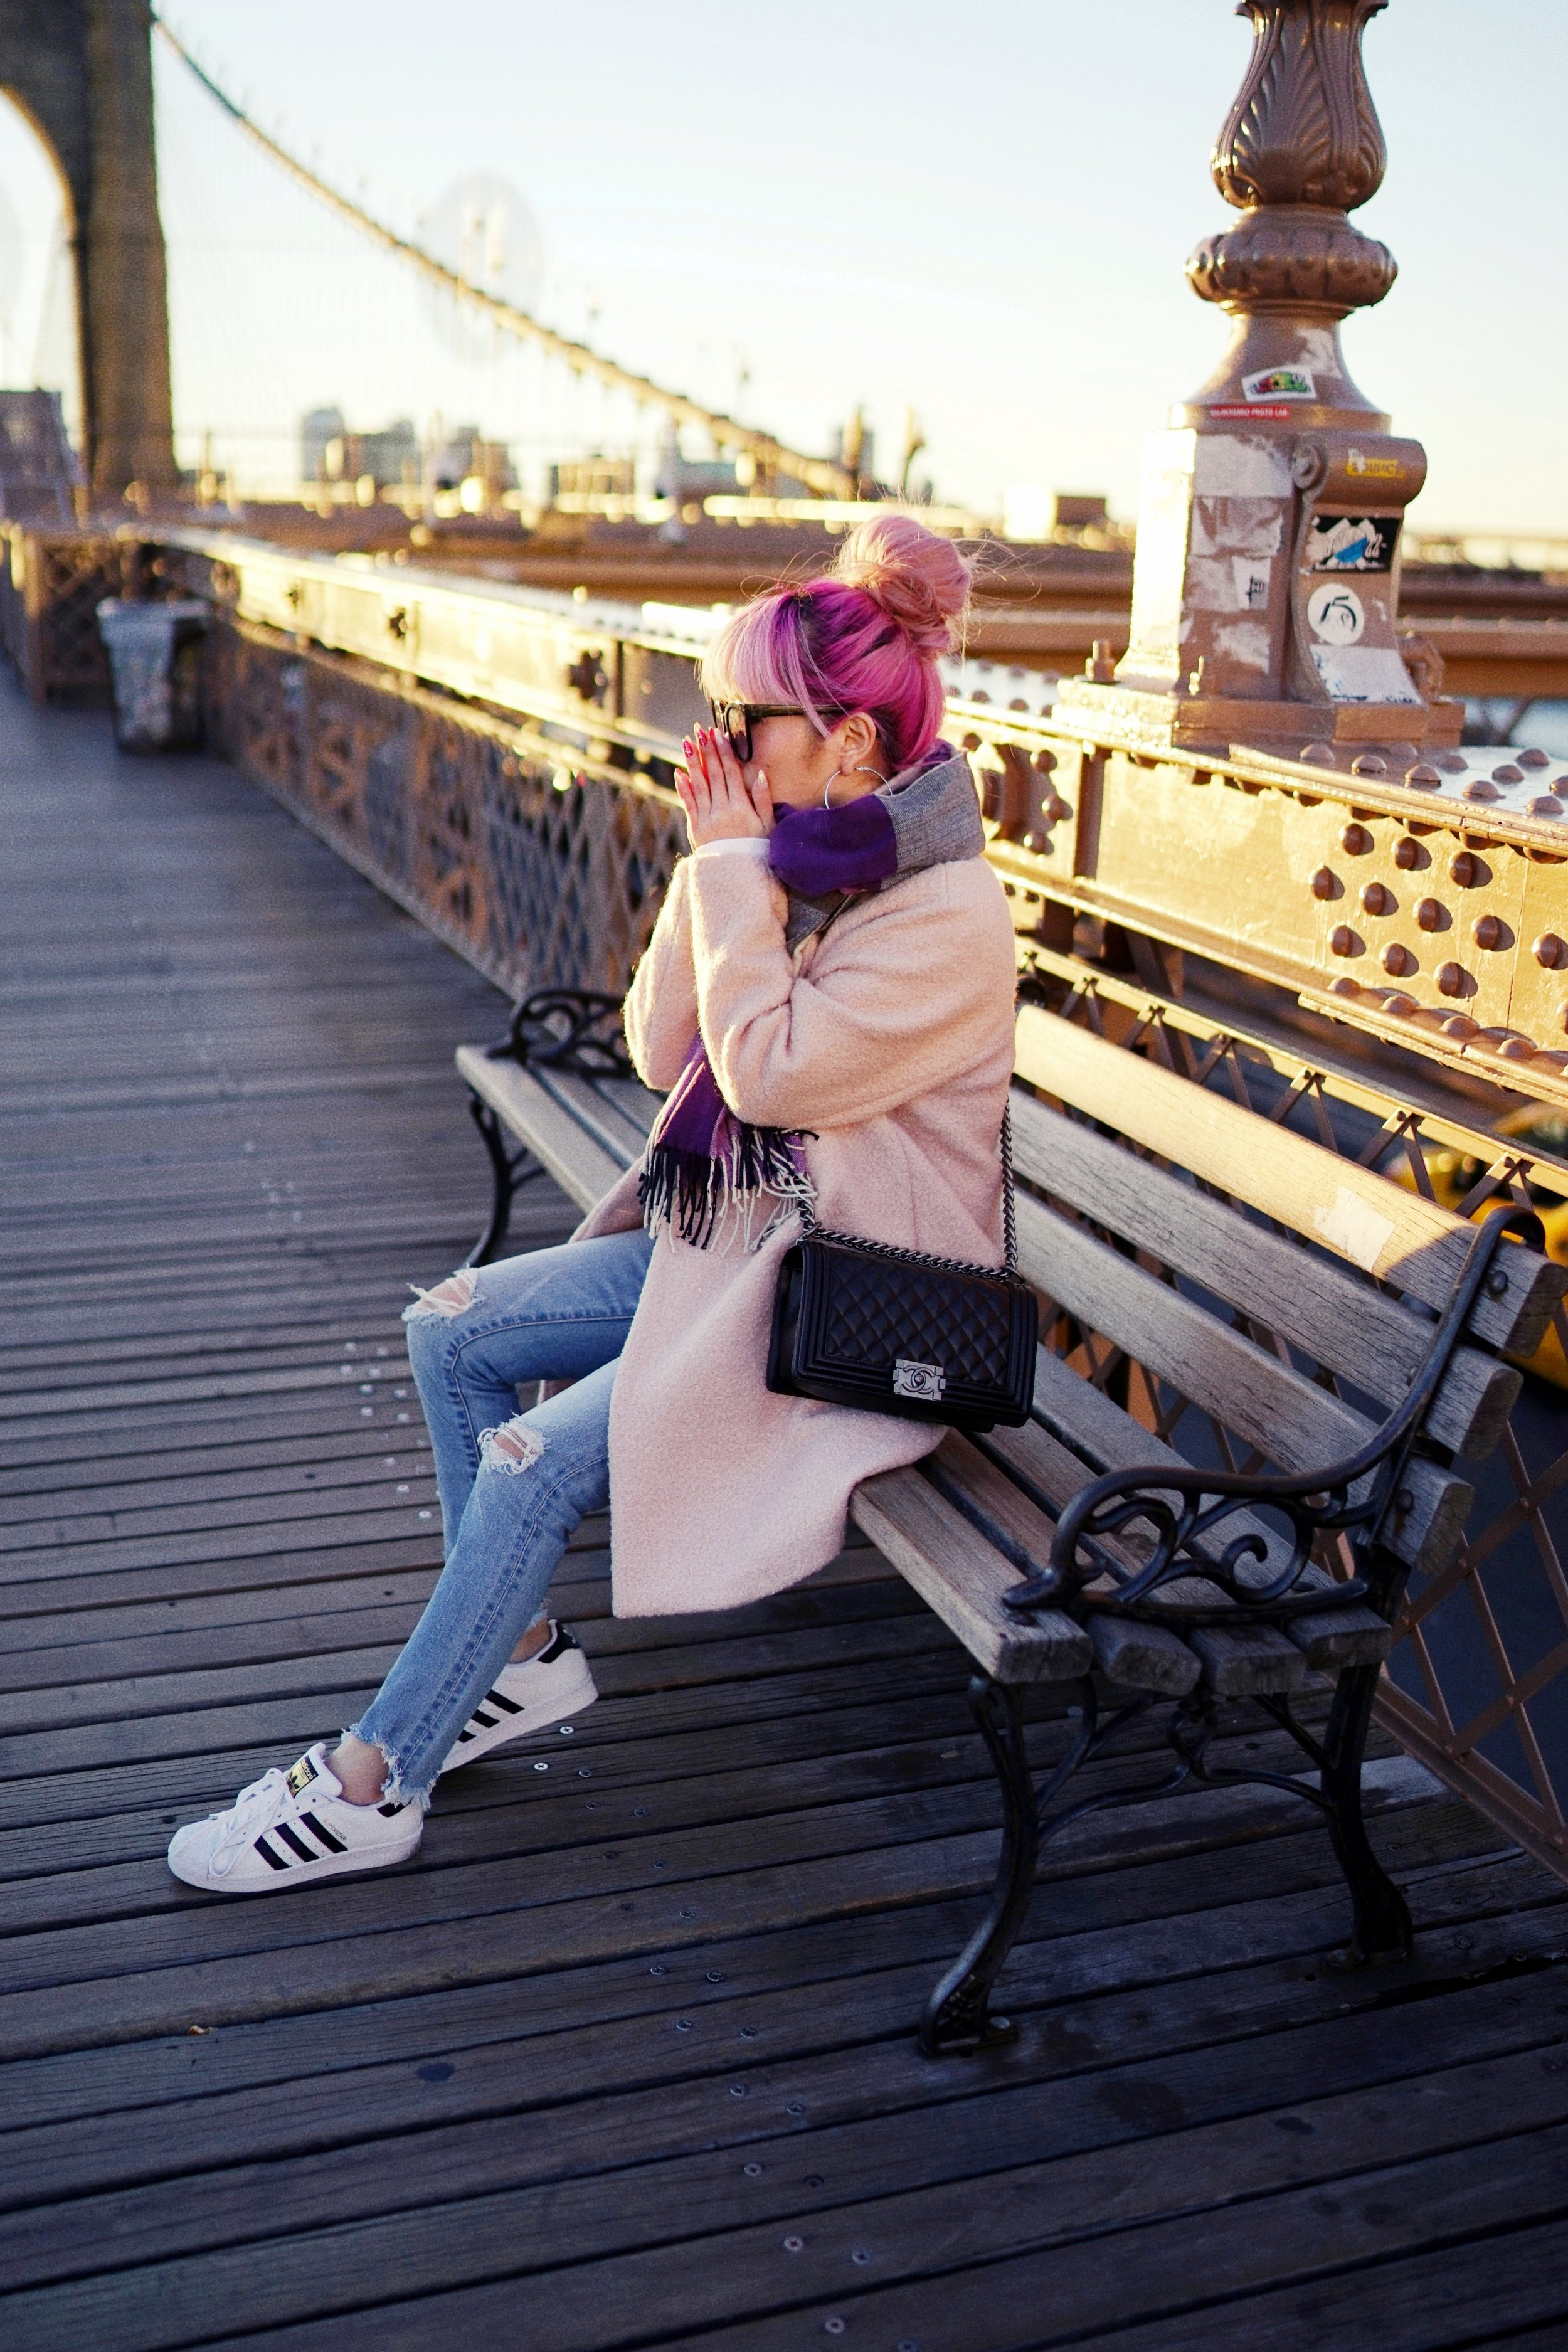 GAP Scarf-Zara pink coat-MOUSSY- frayed hem jeans- CHANEL Lambskin Quilted Medium Boy Flap Black-Adidas Superstar Shoes-Urban Outfitters Sunglasses-Aika's Love Closet-Sealtle fashion style blogger from japan-pink hair-brooklyn bridge-new york-city 9